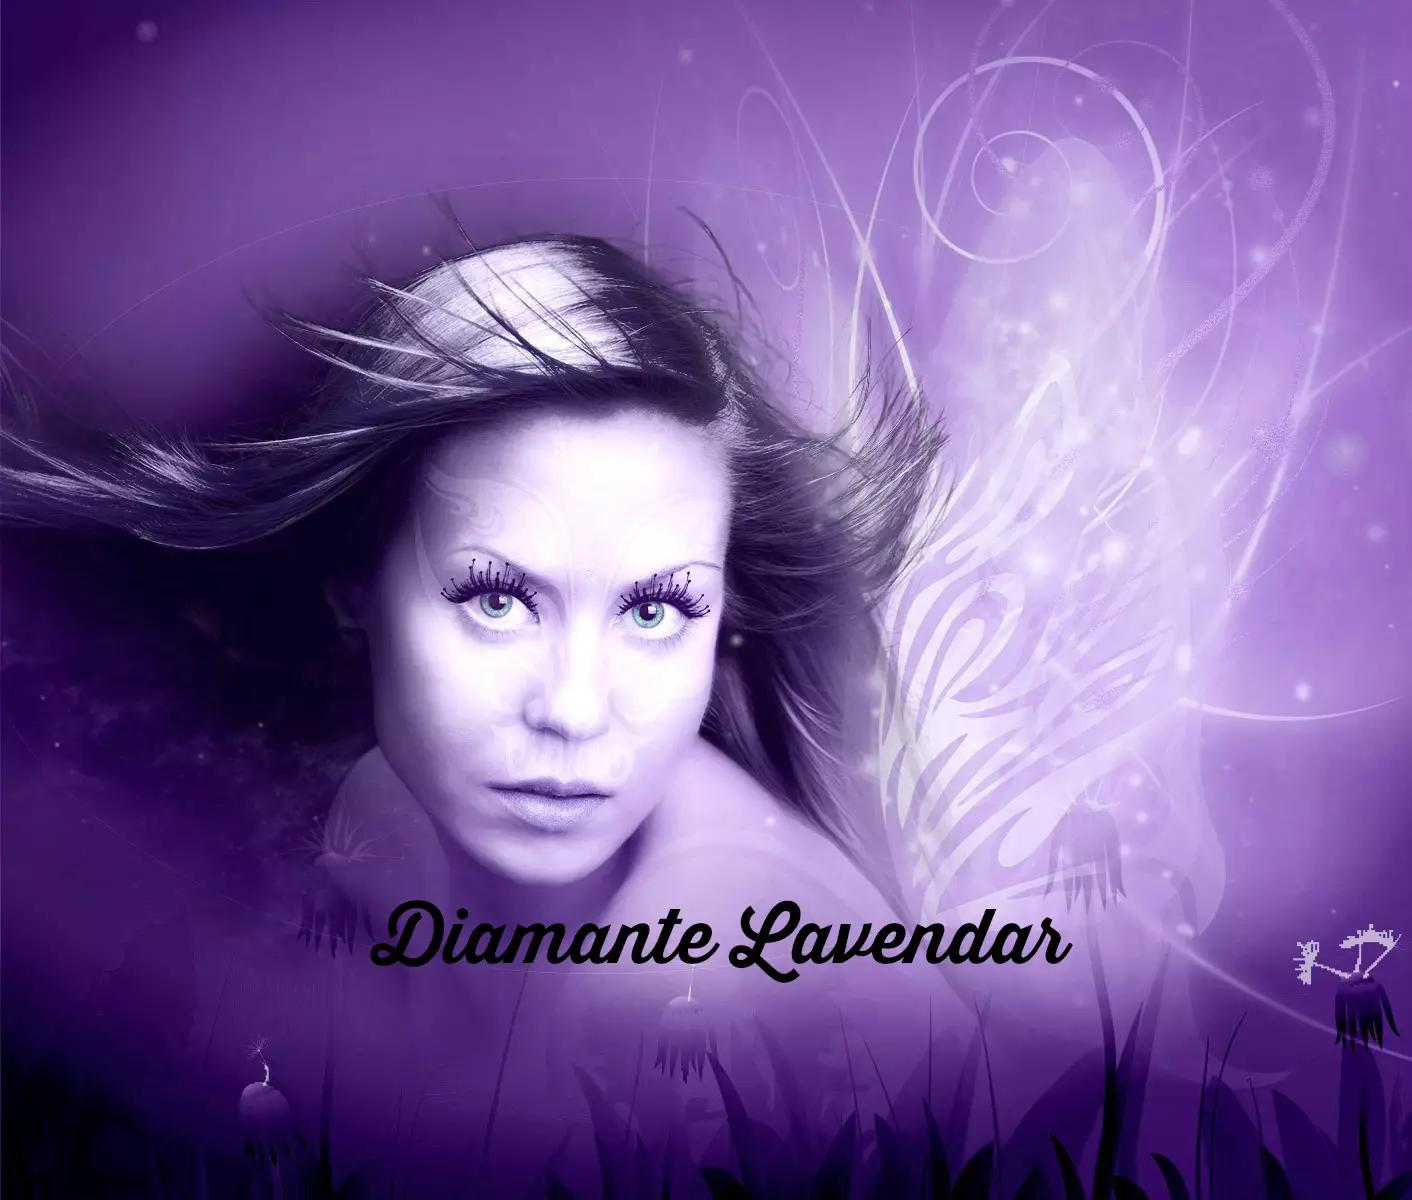 Cropped-image-for-my-website-with-Diamante-Lavendar-written-on-it